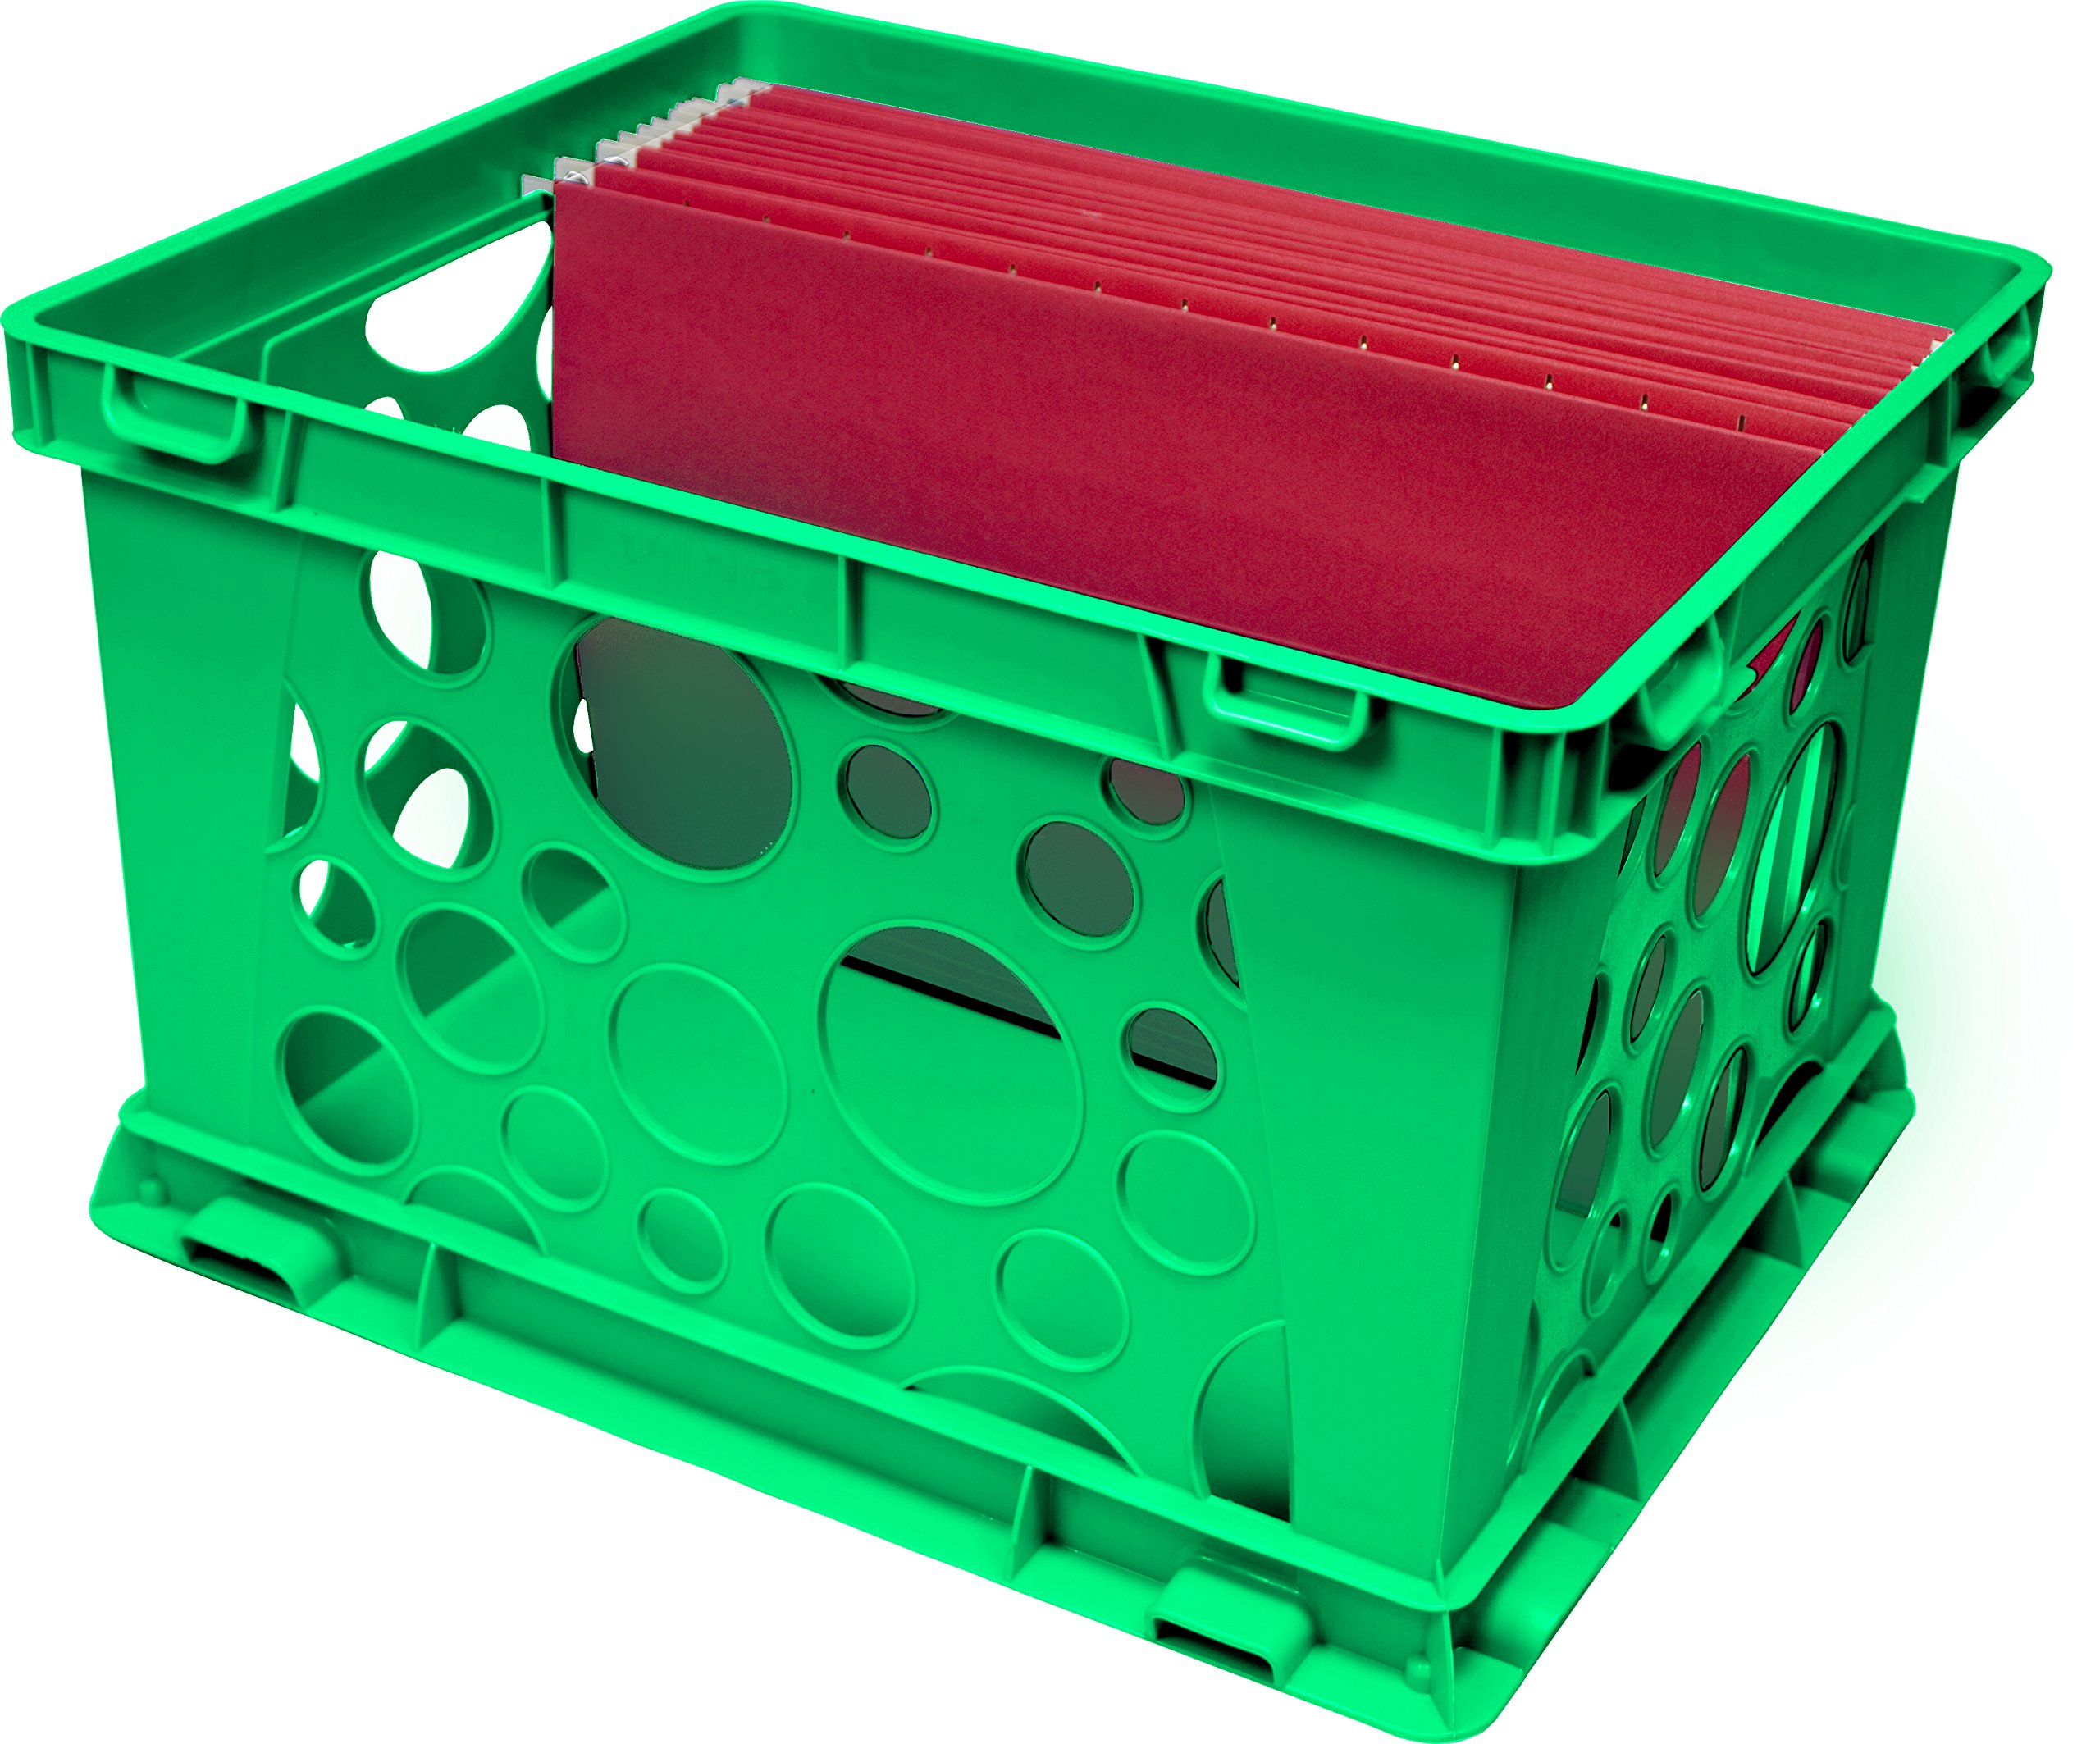 Storex Large Storage and Transport File Crate, 17.25 x 14.25 x 10.5 Inches, Green, Case of 3 (STX61556U03C) by Storex (Image #3)